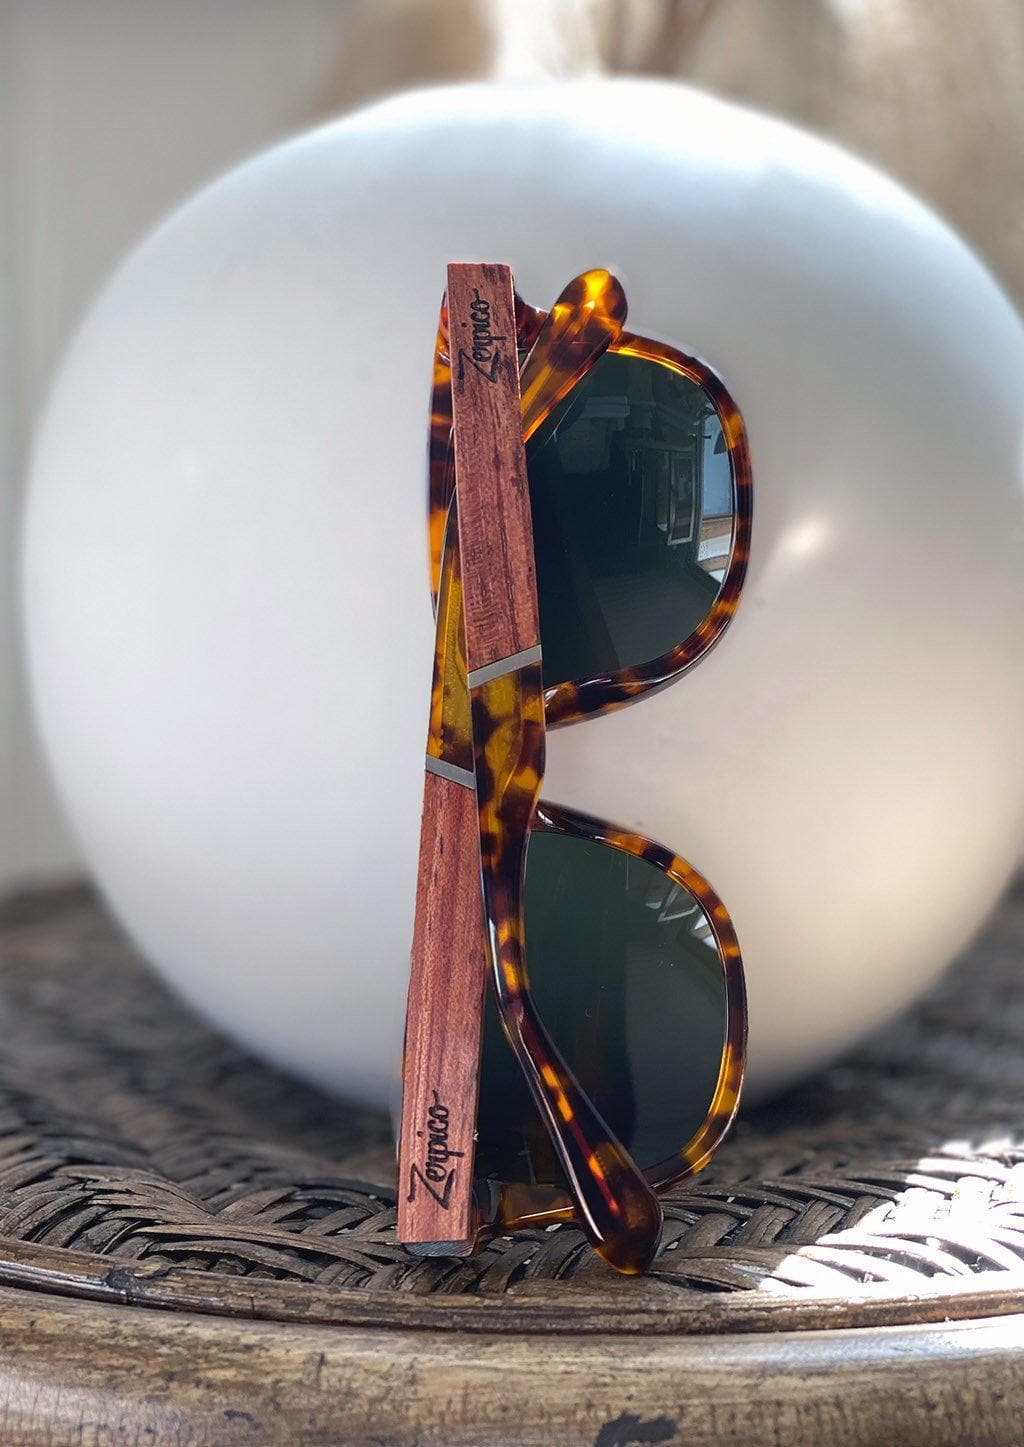 Eyewood Wayfarers - Fusion - Lynx - A mix of acetate and wood makes theses sunglasses unique. Showing of some wooden details.